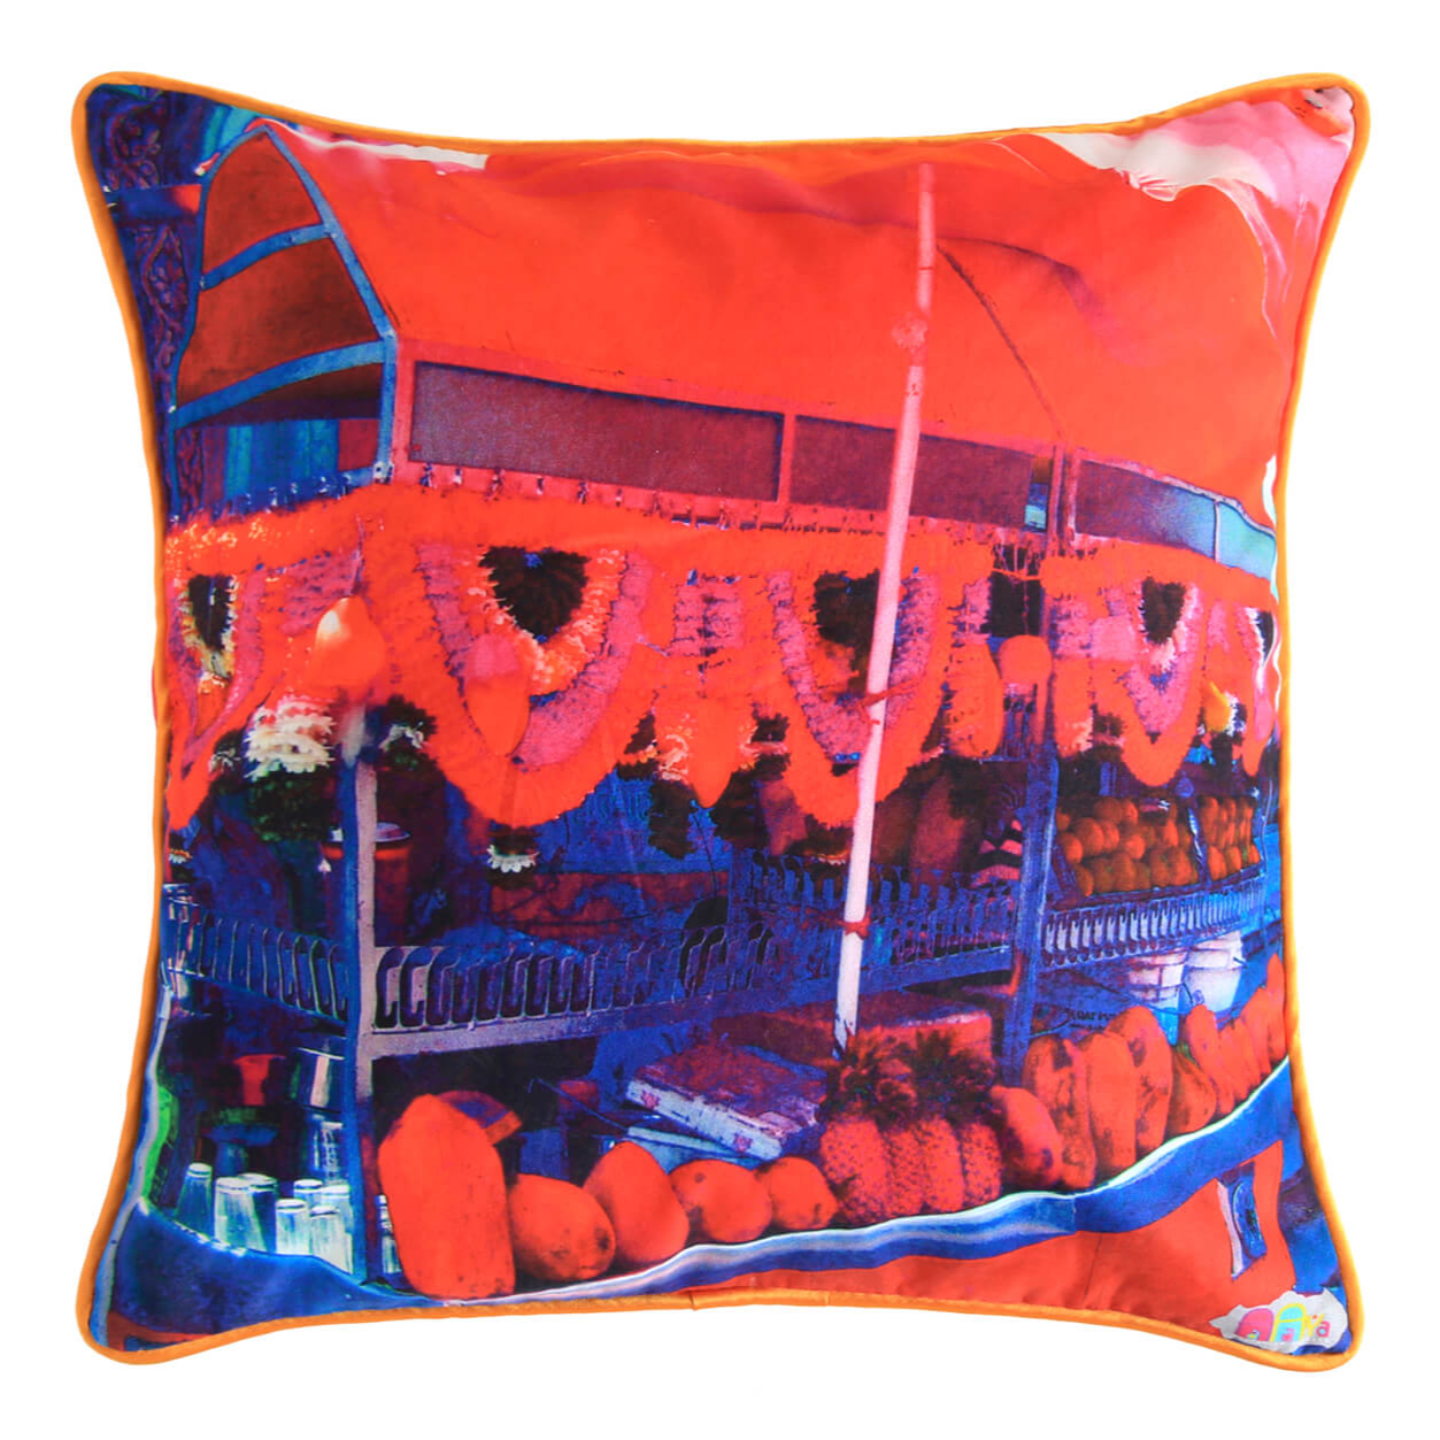 Juice Stall Glaze Cotton Cushion Cover 16x16 Inches